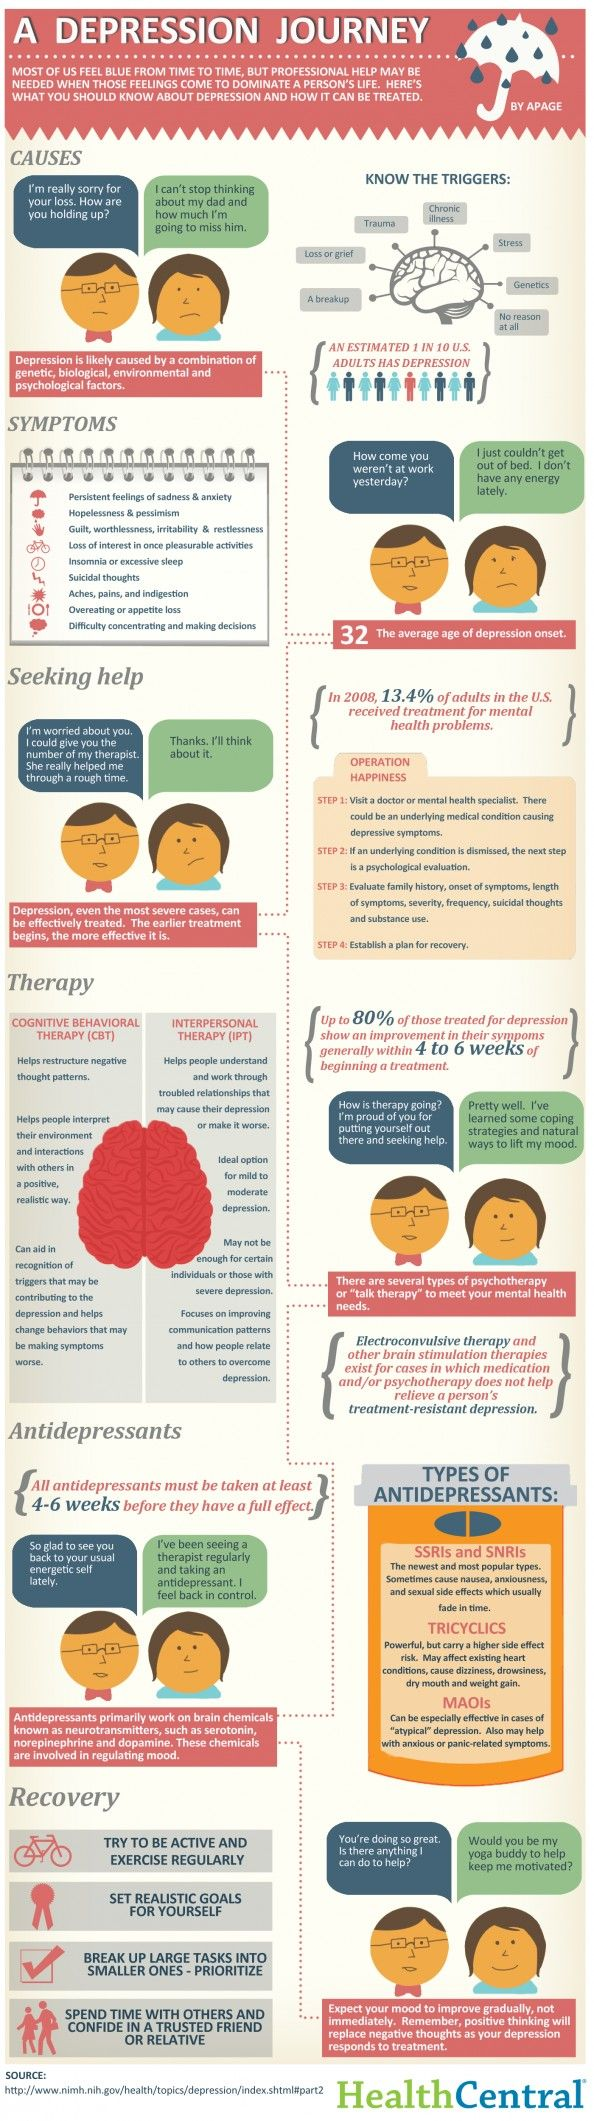 A #depression journey. #infographic #trauma #stress #genetics #psychology #health #mental #mentalhealth #emotion #anxiety #cognitivebehavioraltherapy #therapy #psychotherapy #antidepressant  #medication #neurotransmitter #serotonin #norepinephrine #dopamine #chemistry #neuroscience #mood #science